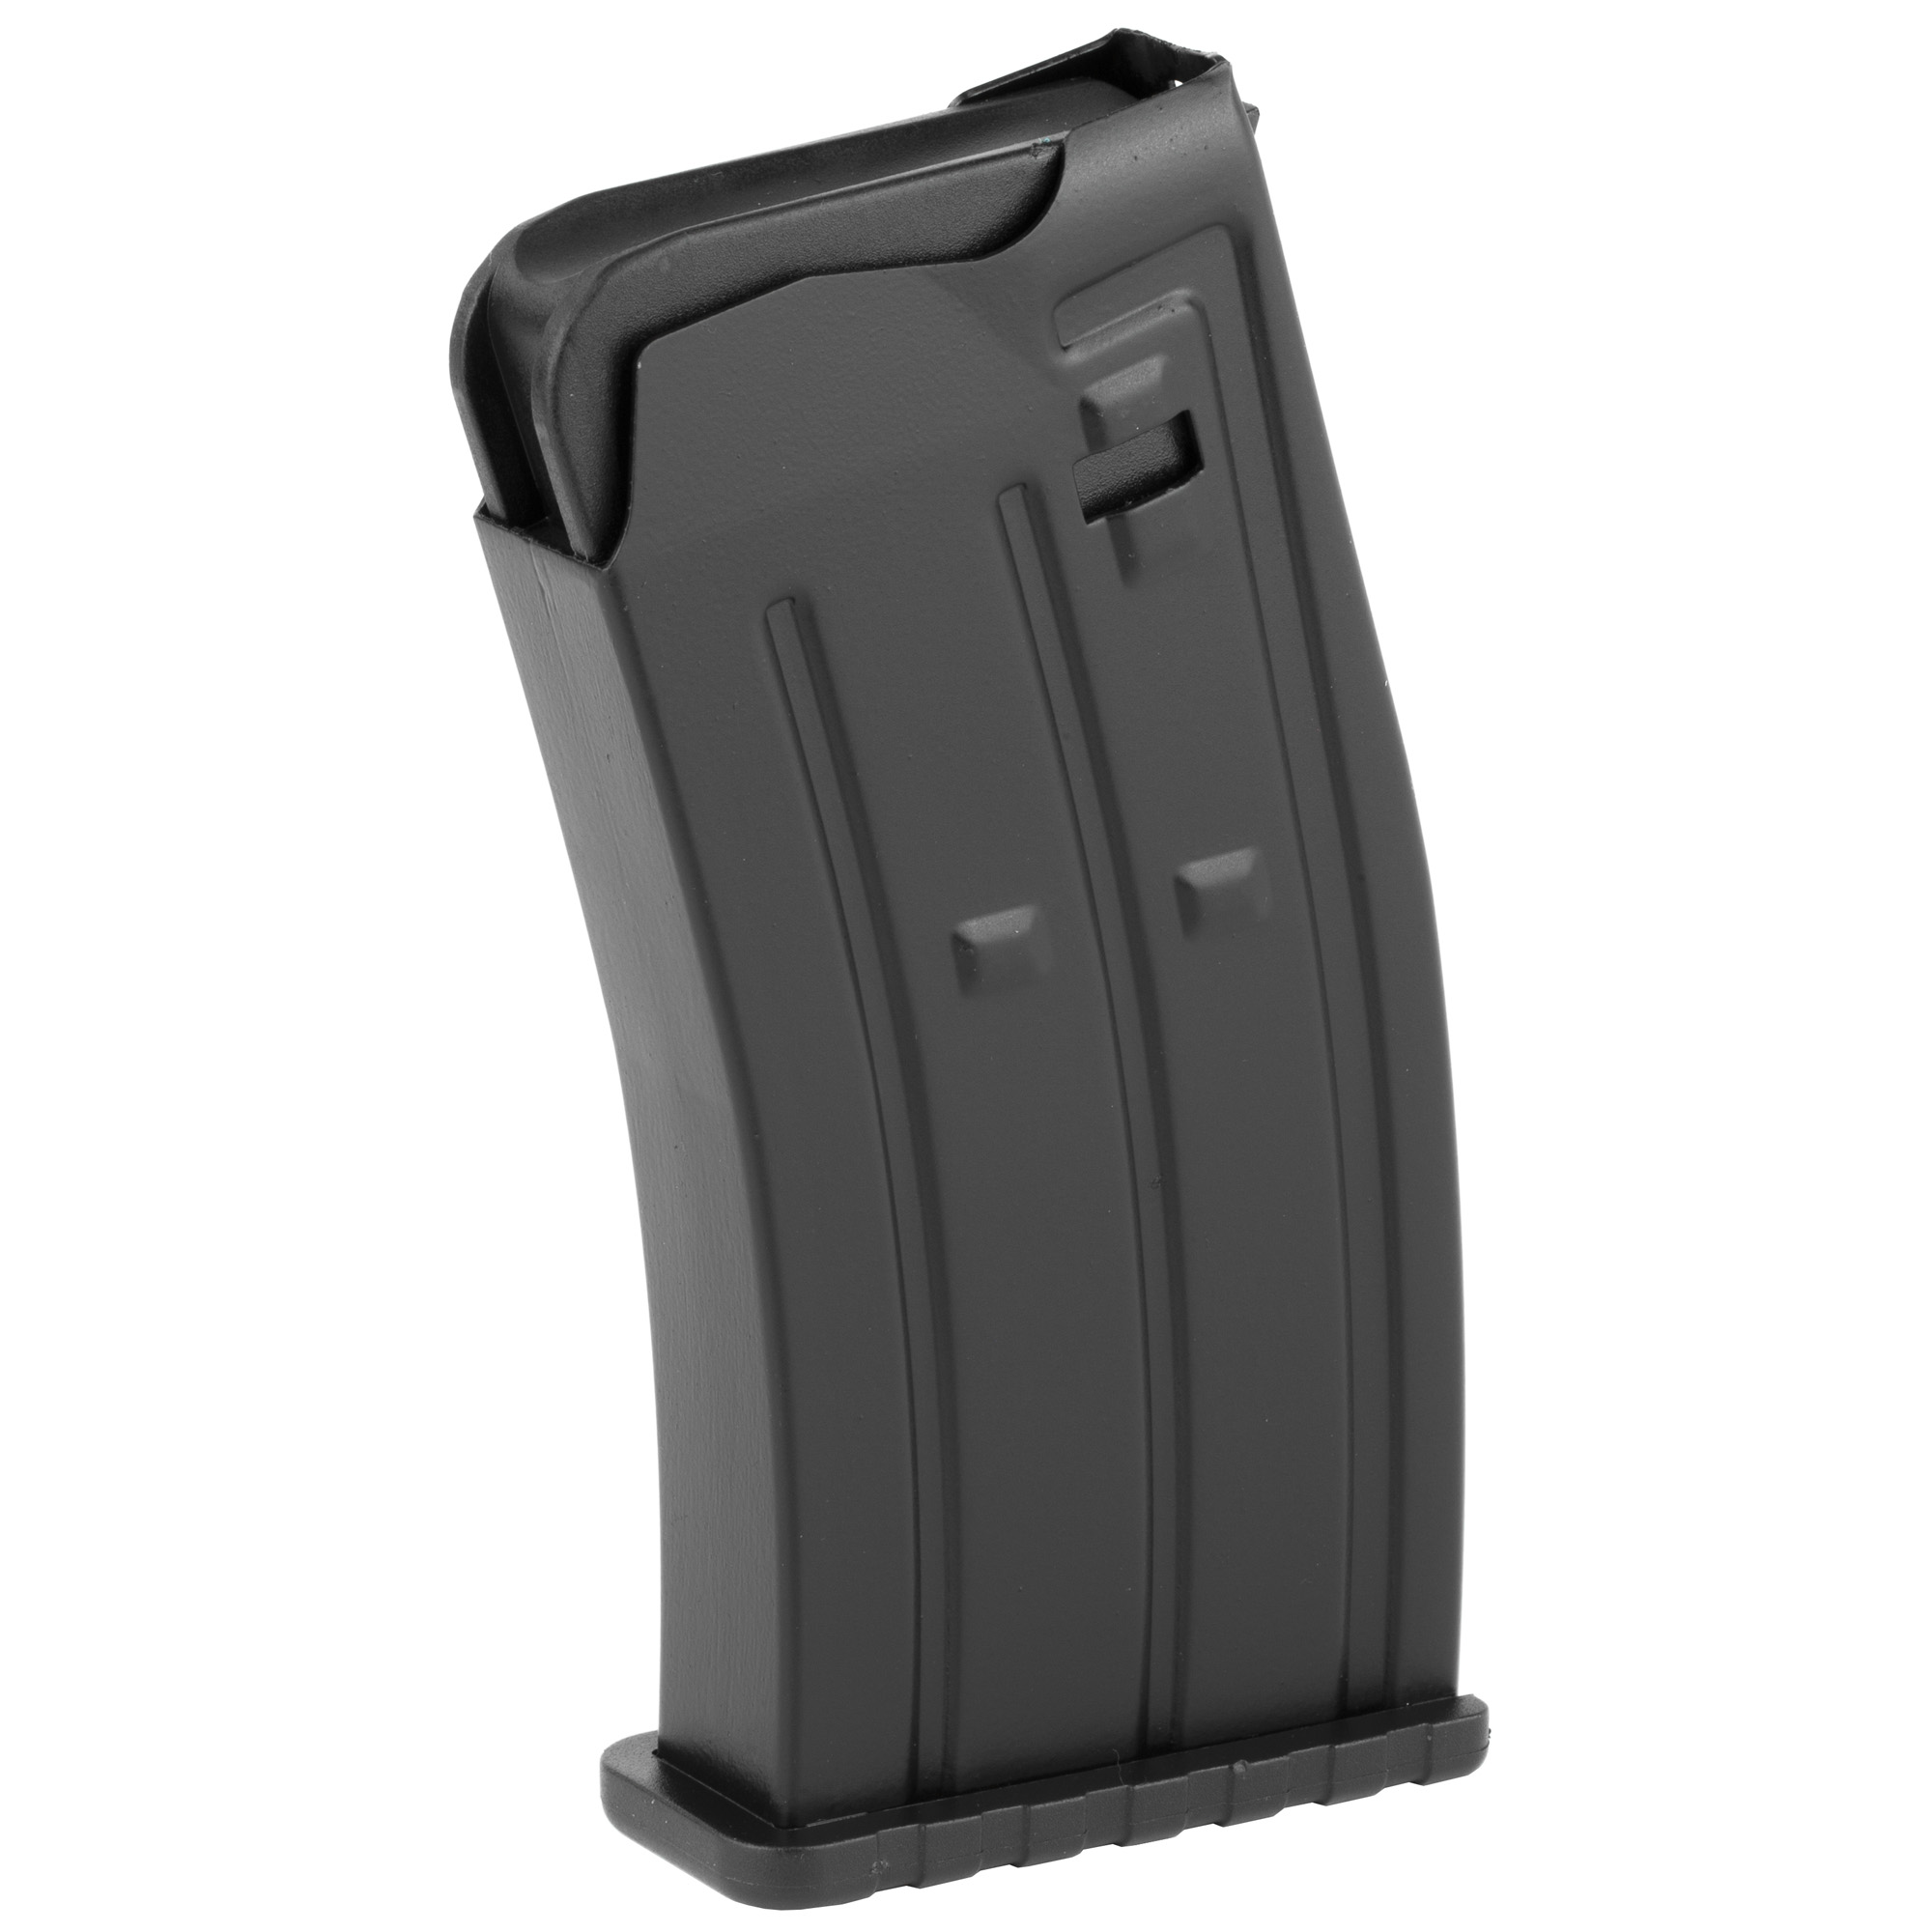 RIA imports VR-60 5 round magazine is constructed with a Steel magazine body for durability along with a chrome silicon magazine spring. Other features include a polymer anti tilt follower and base plate.